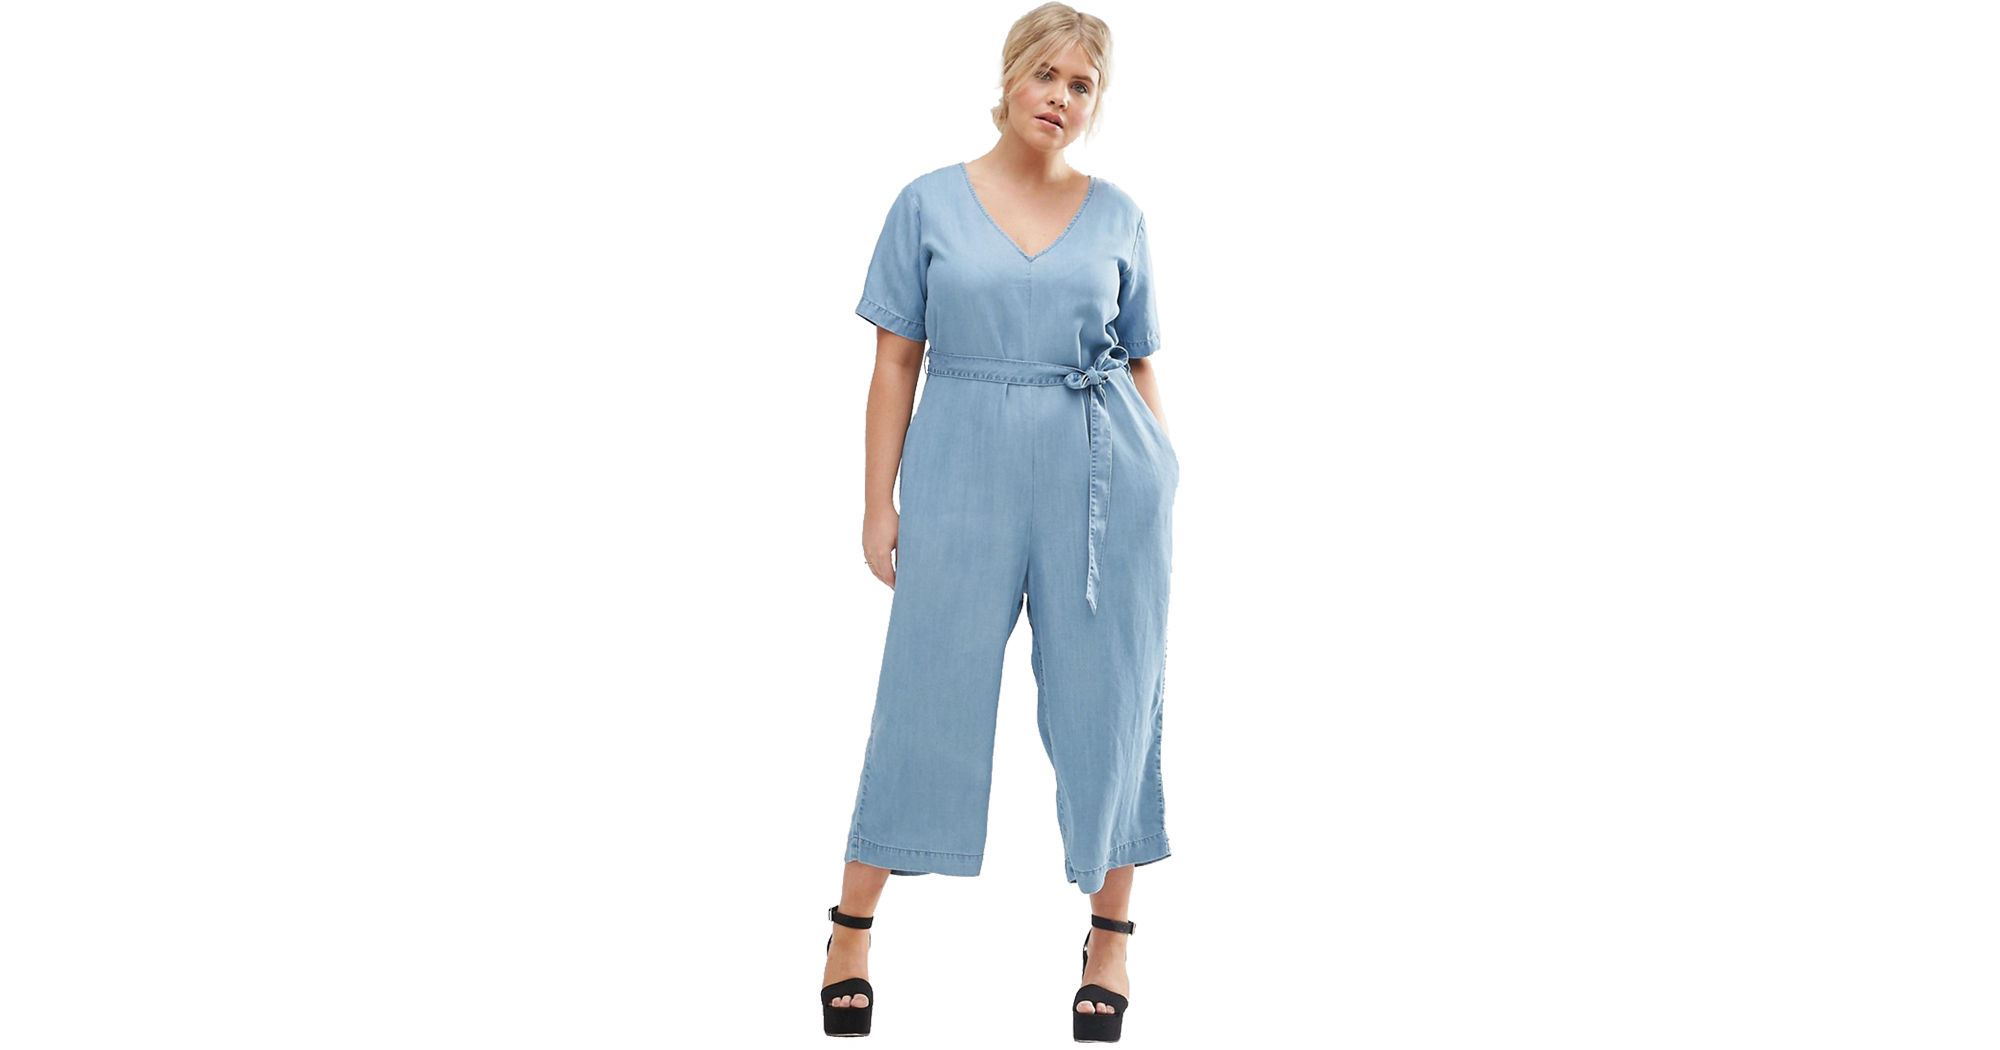 83148d6f7eb Summer Outfits That Are Perfect For Curvy Figures